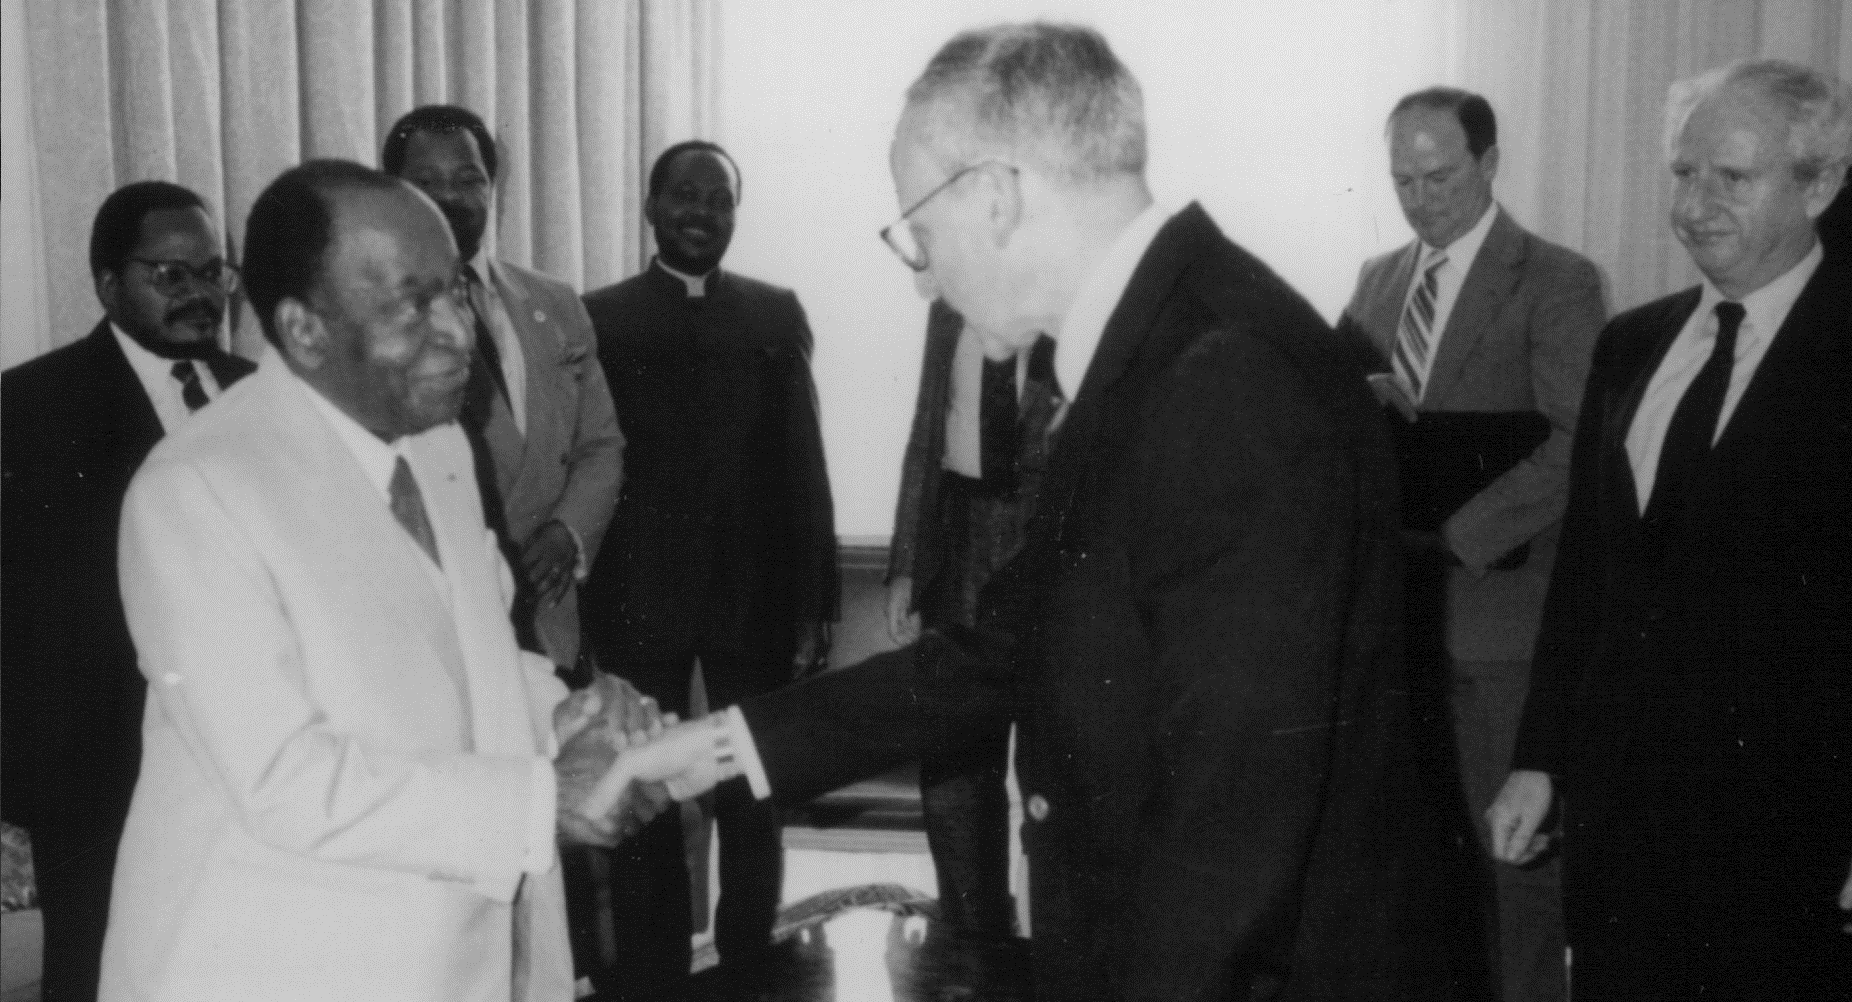 President Félix Houphouët-Boigny of Côte d'Ivoire greets Assistant Secretary of State Cohen in Abidjan(1991).